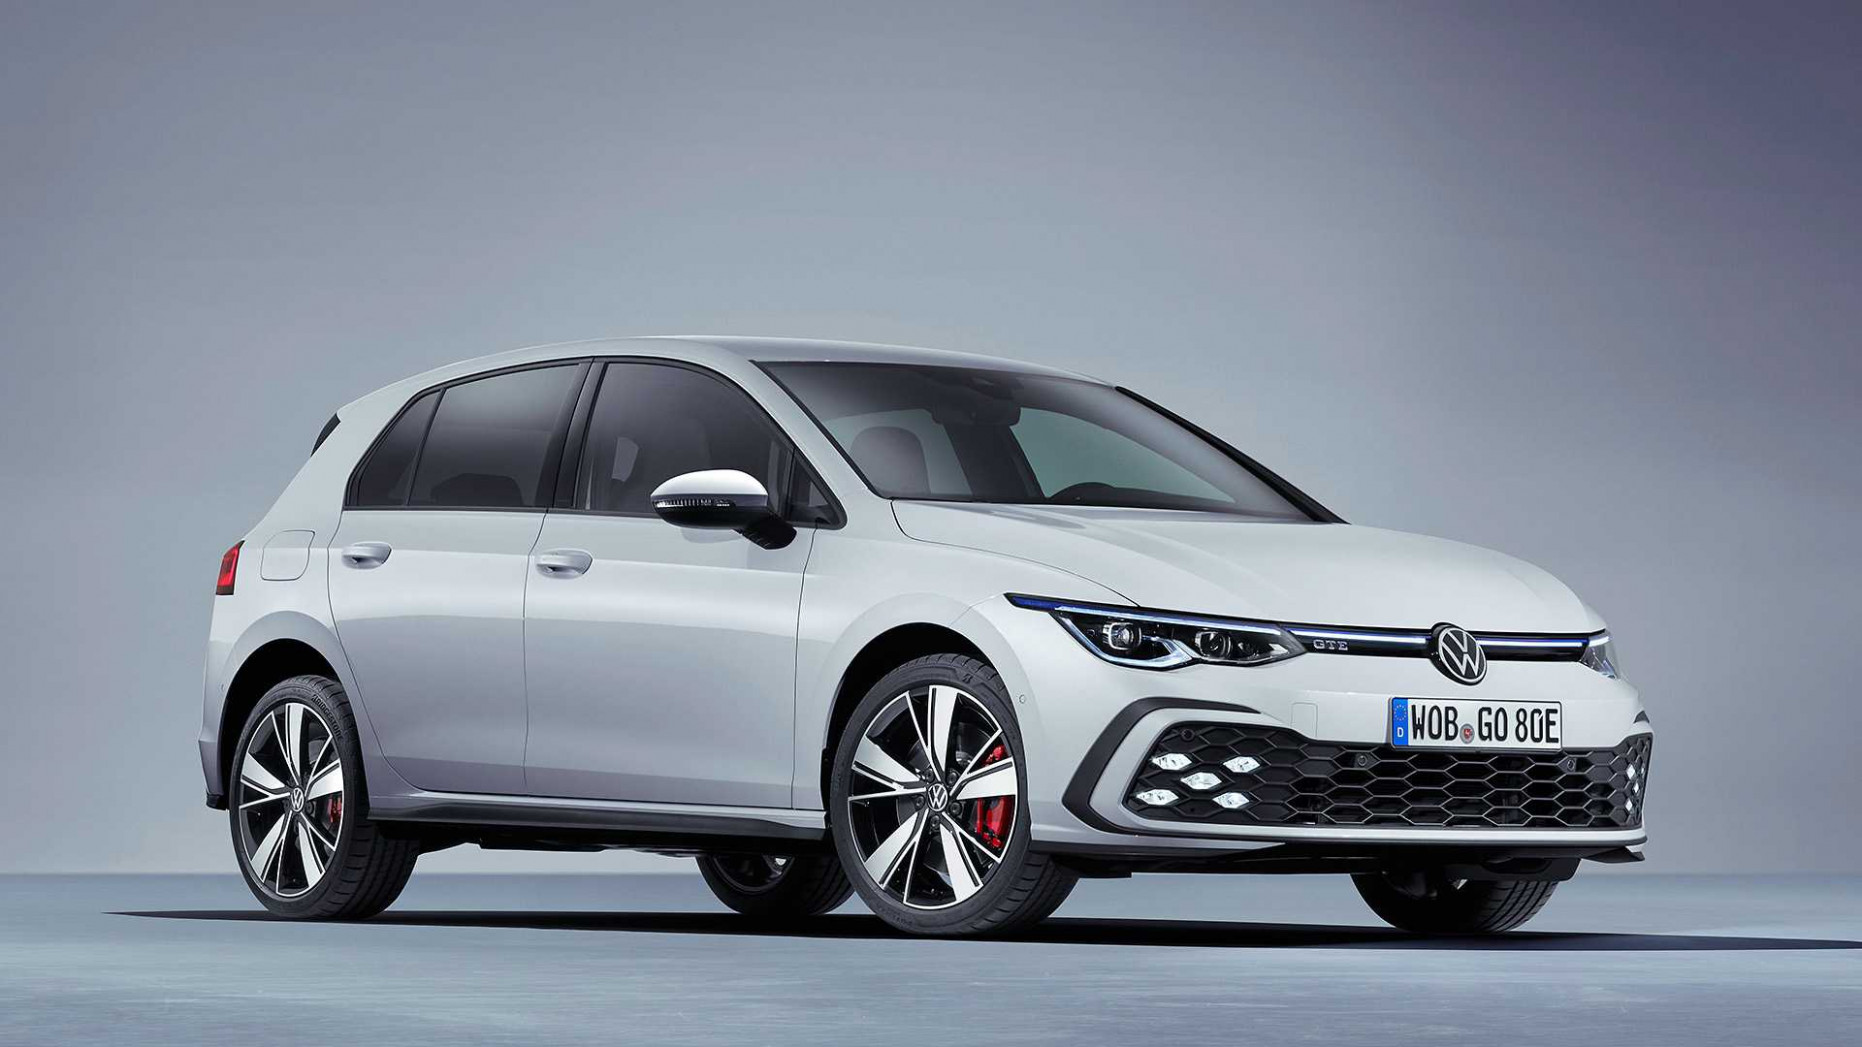 VW Golf GTE (7): Neue Plug-in-Hybrid-Version mit 7 PS